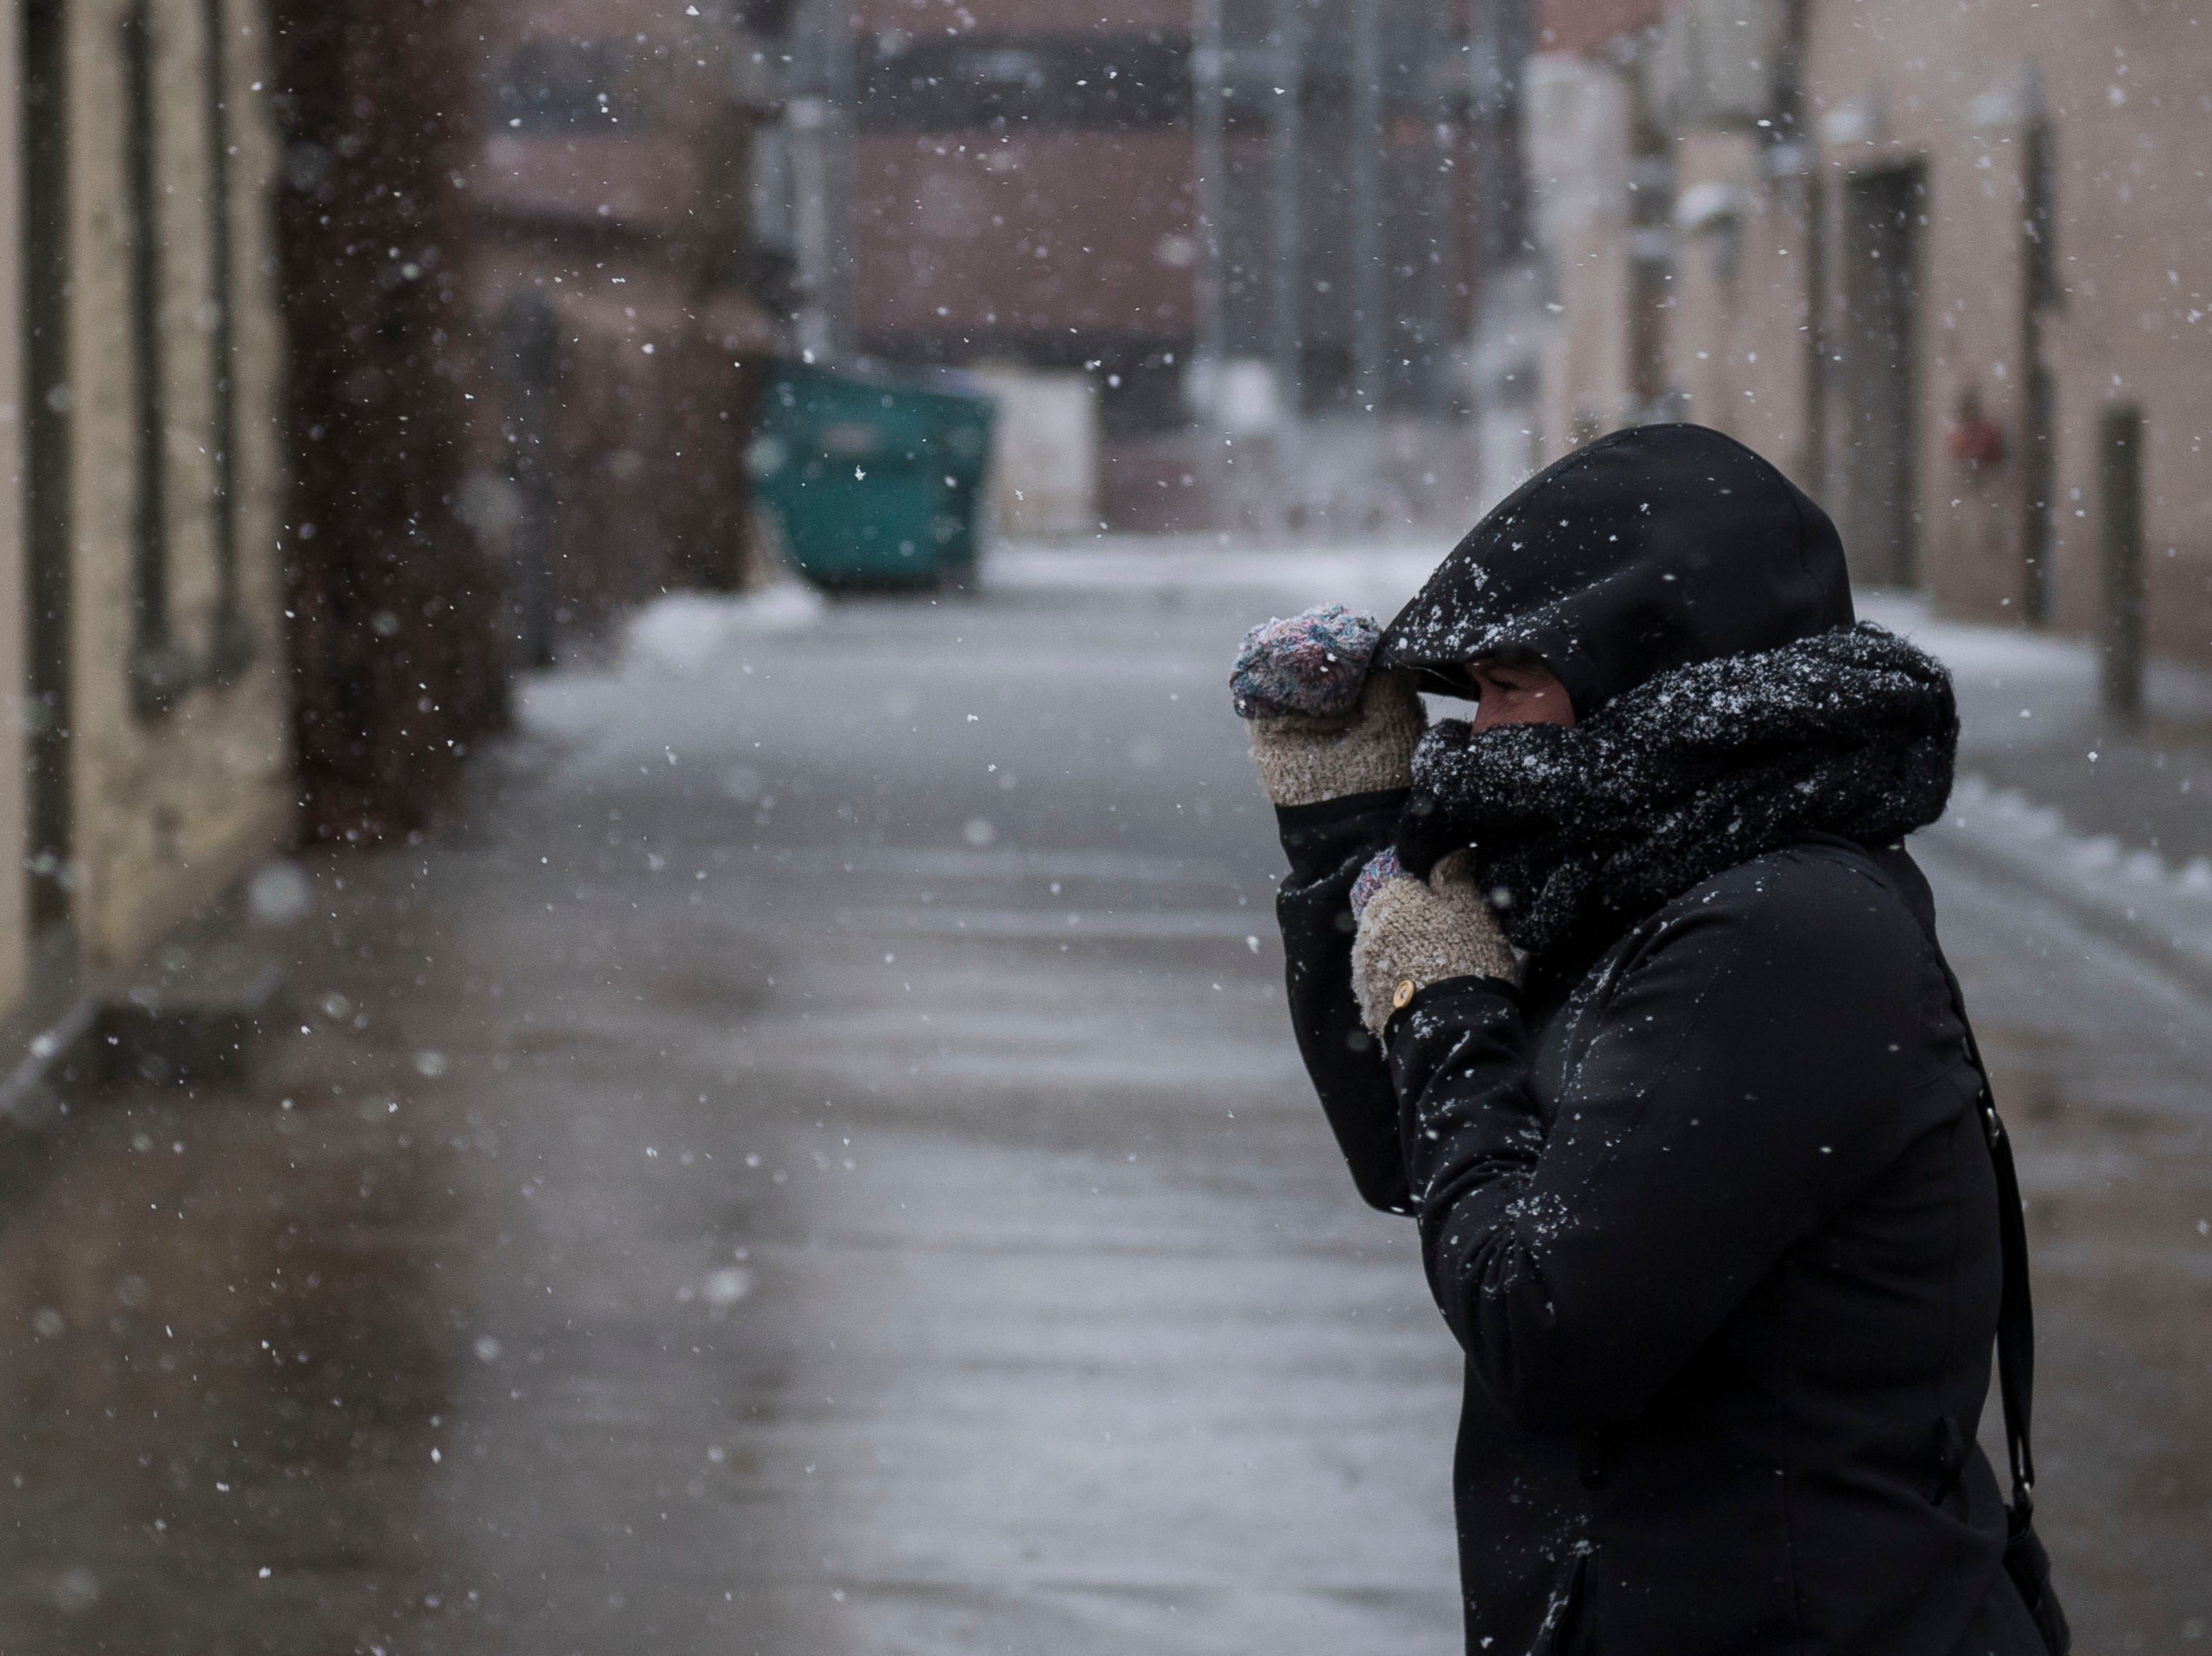 Hair stylist Jacque Buyck shields her face from the blowing snow as she head to work in Old Town on Wednesday morning, March 13, 2019, in Fort Collins, Colo.